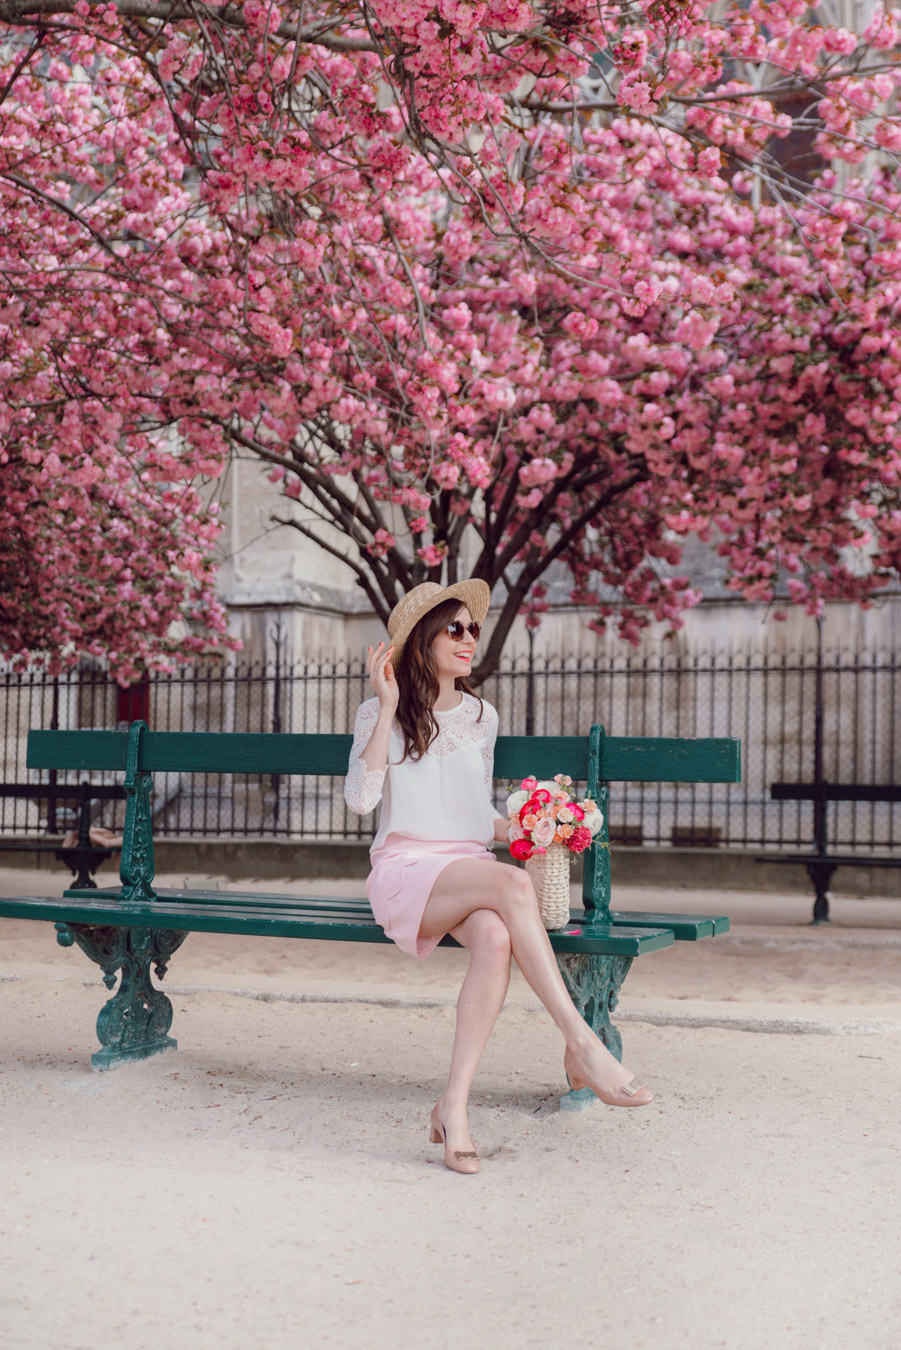 Blog-Mode-And-The-City-Looks-Notre-Dame-arbre-en-fleurs-9